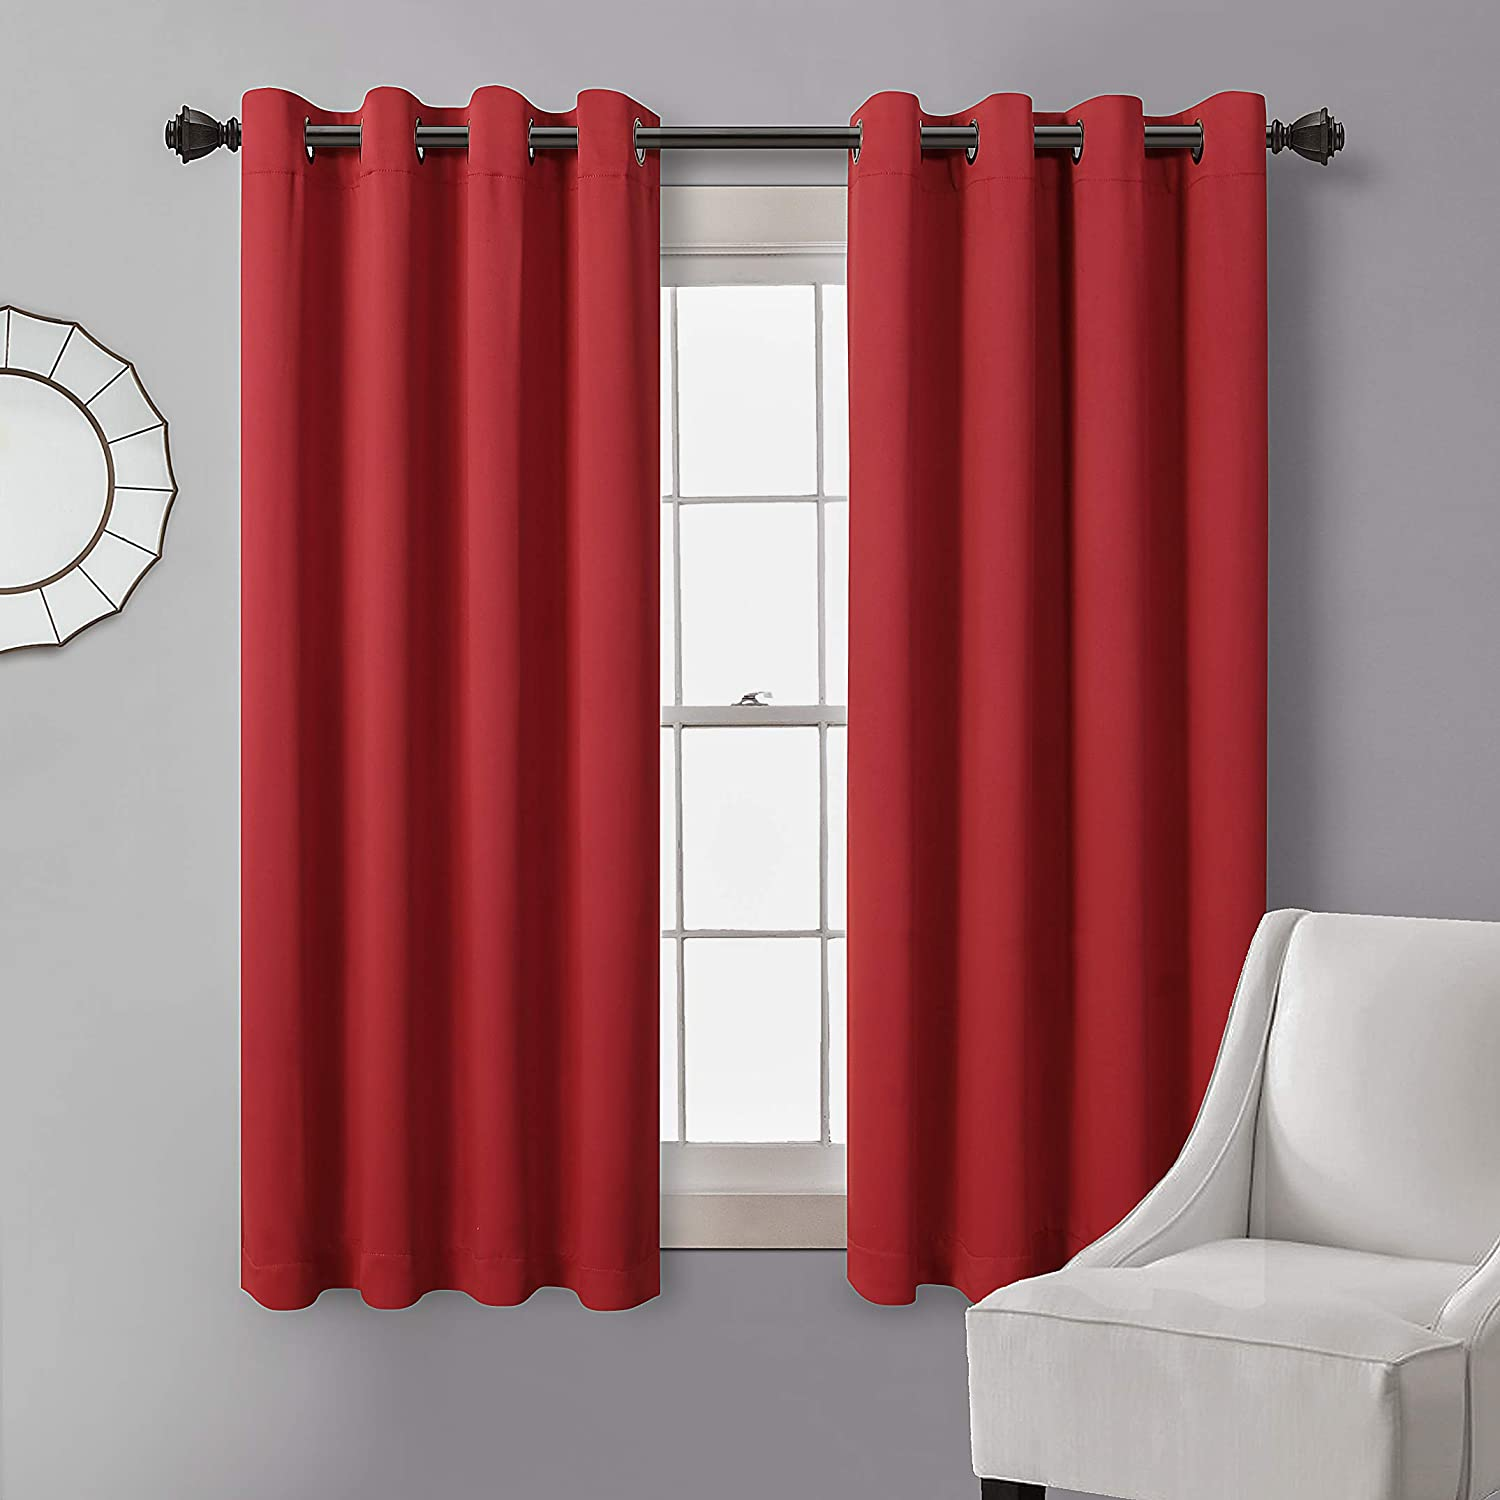 MYSKY HOME Blackout Curtain for Bedroom, Grommet Room Darkening Curtain, Amazing Triple Weave Thermal Insulated Curtain, 1 Curtain Panel ( 52 x 63 Inch, Red )